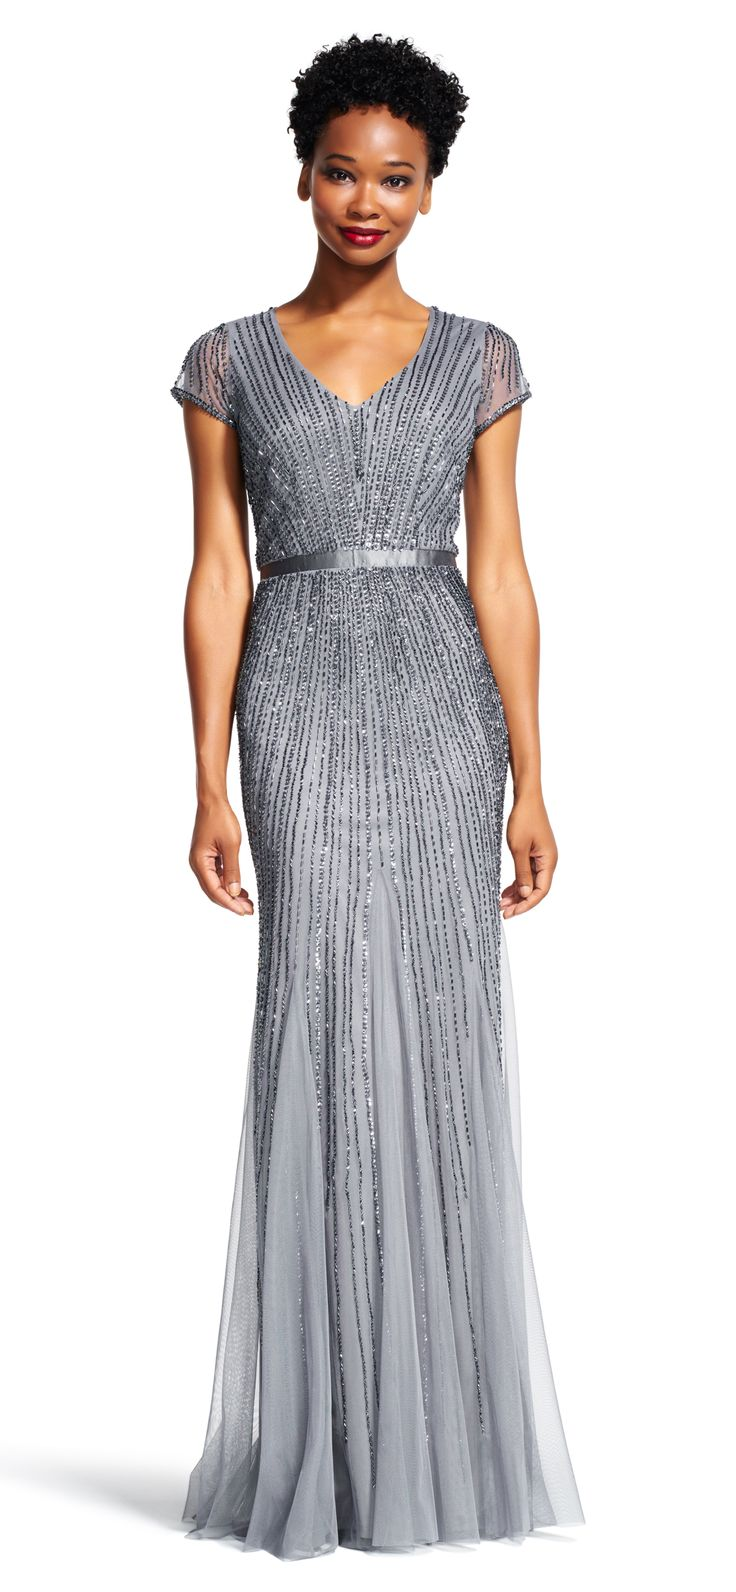 Sheer Short Sleeves Set The Tone For This Dazzling Dress